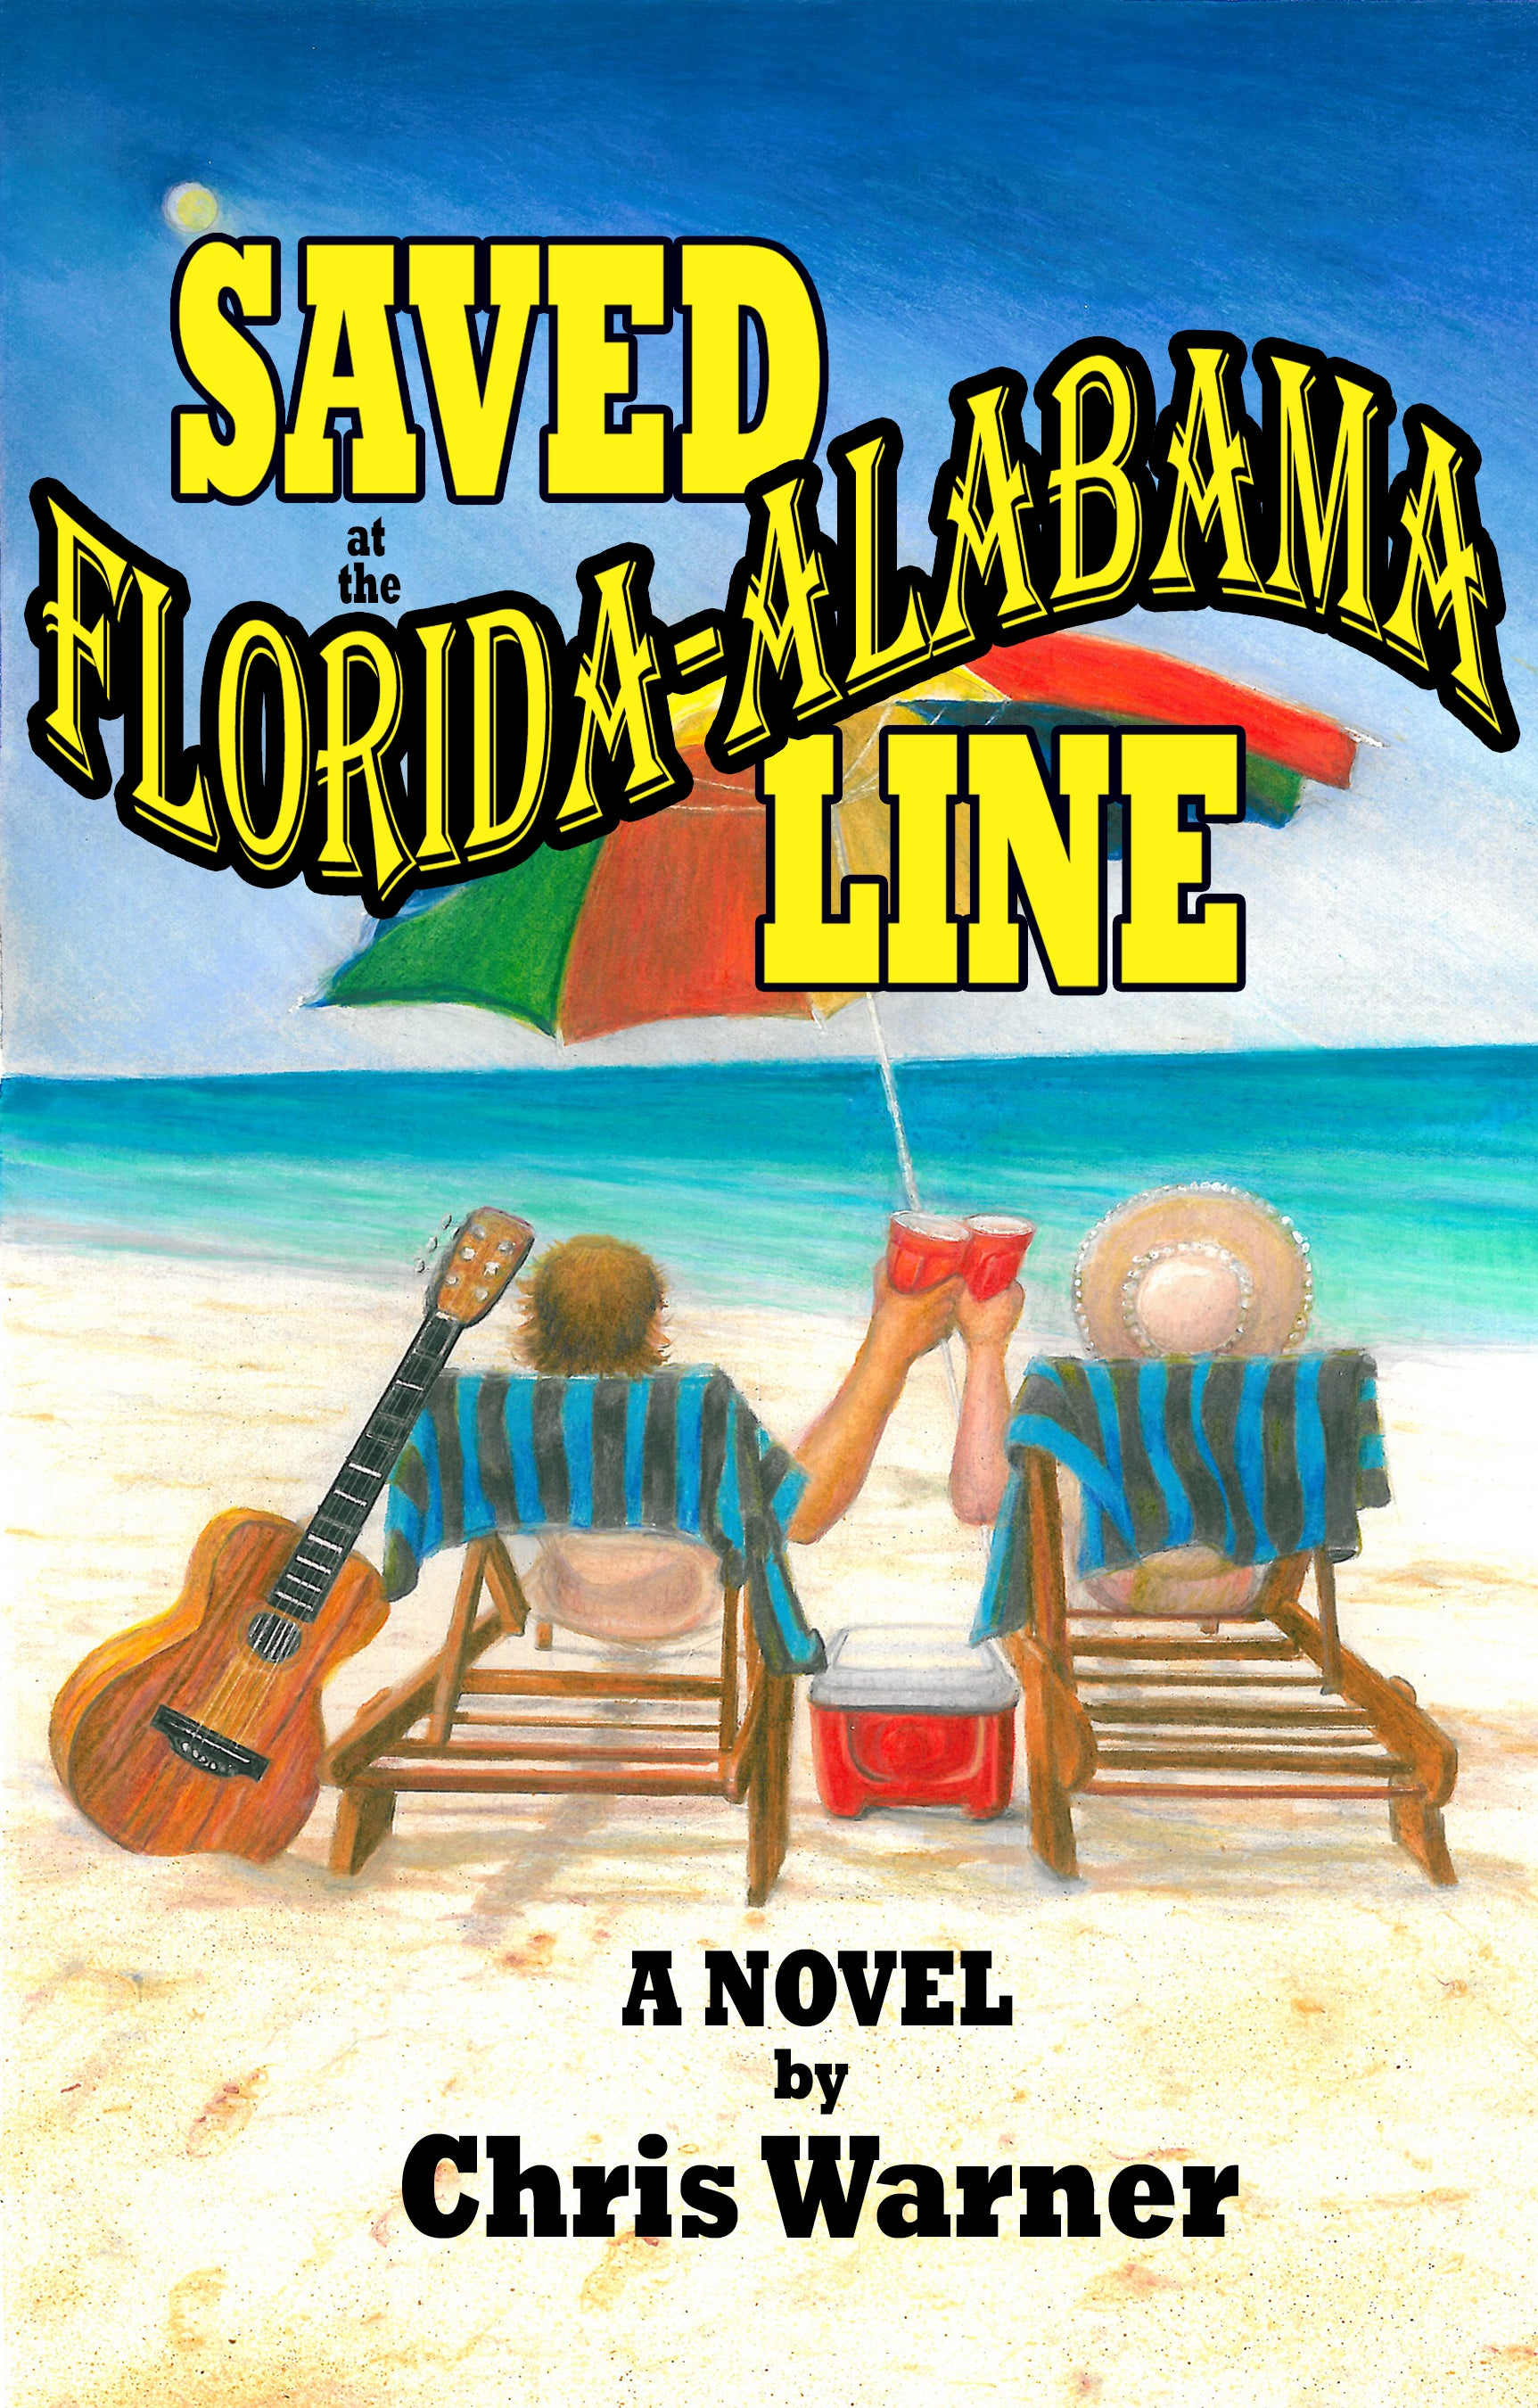 Book Review: Saved at the Alabama-Florida Line